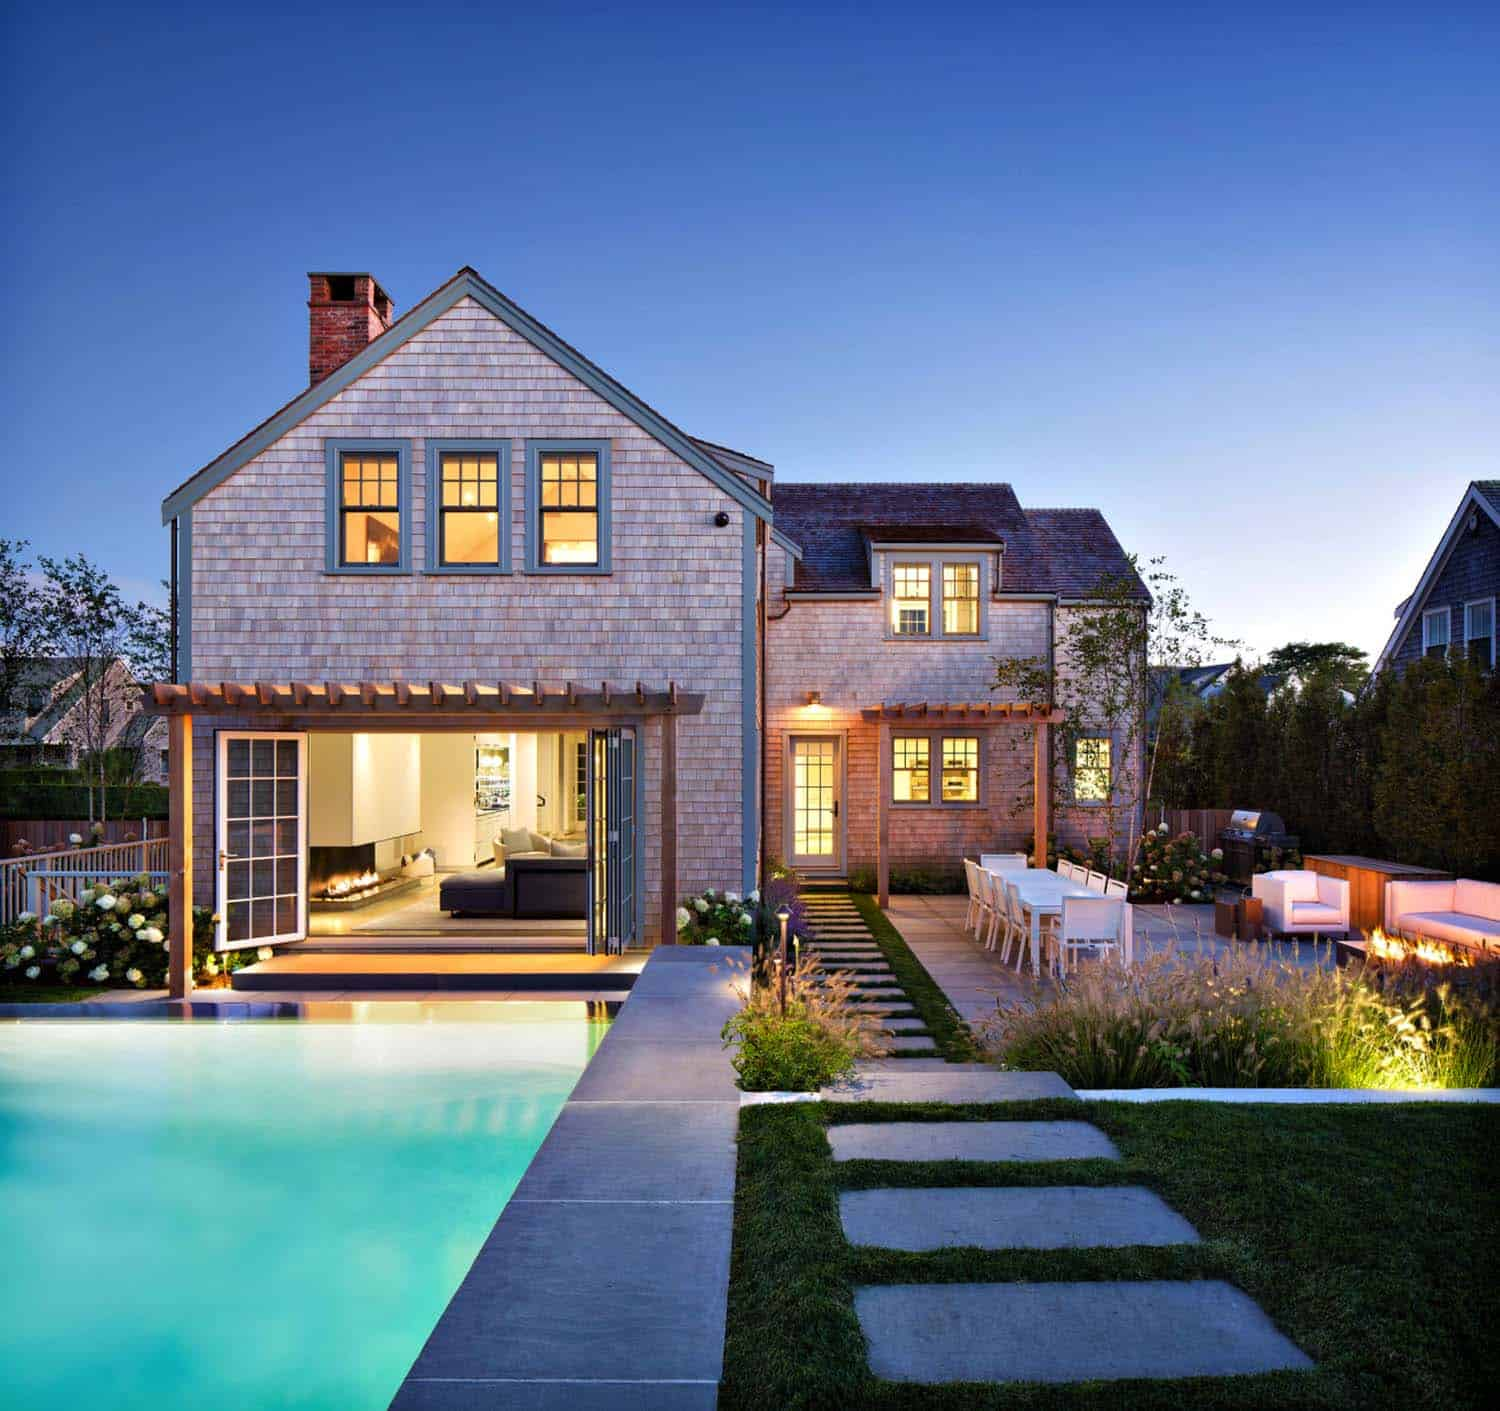 An exquisite modern retreat on the idyllic island of Nantucket